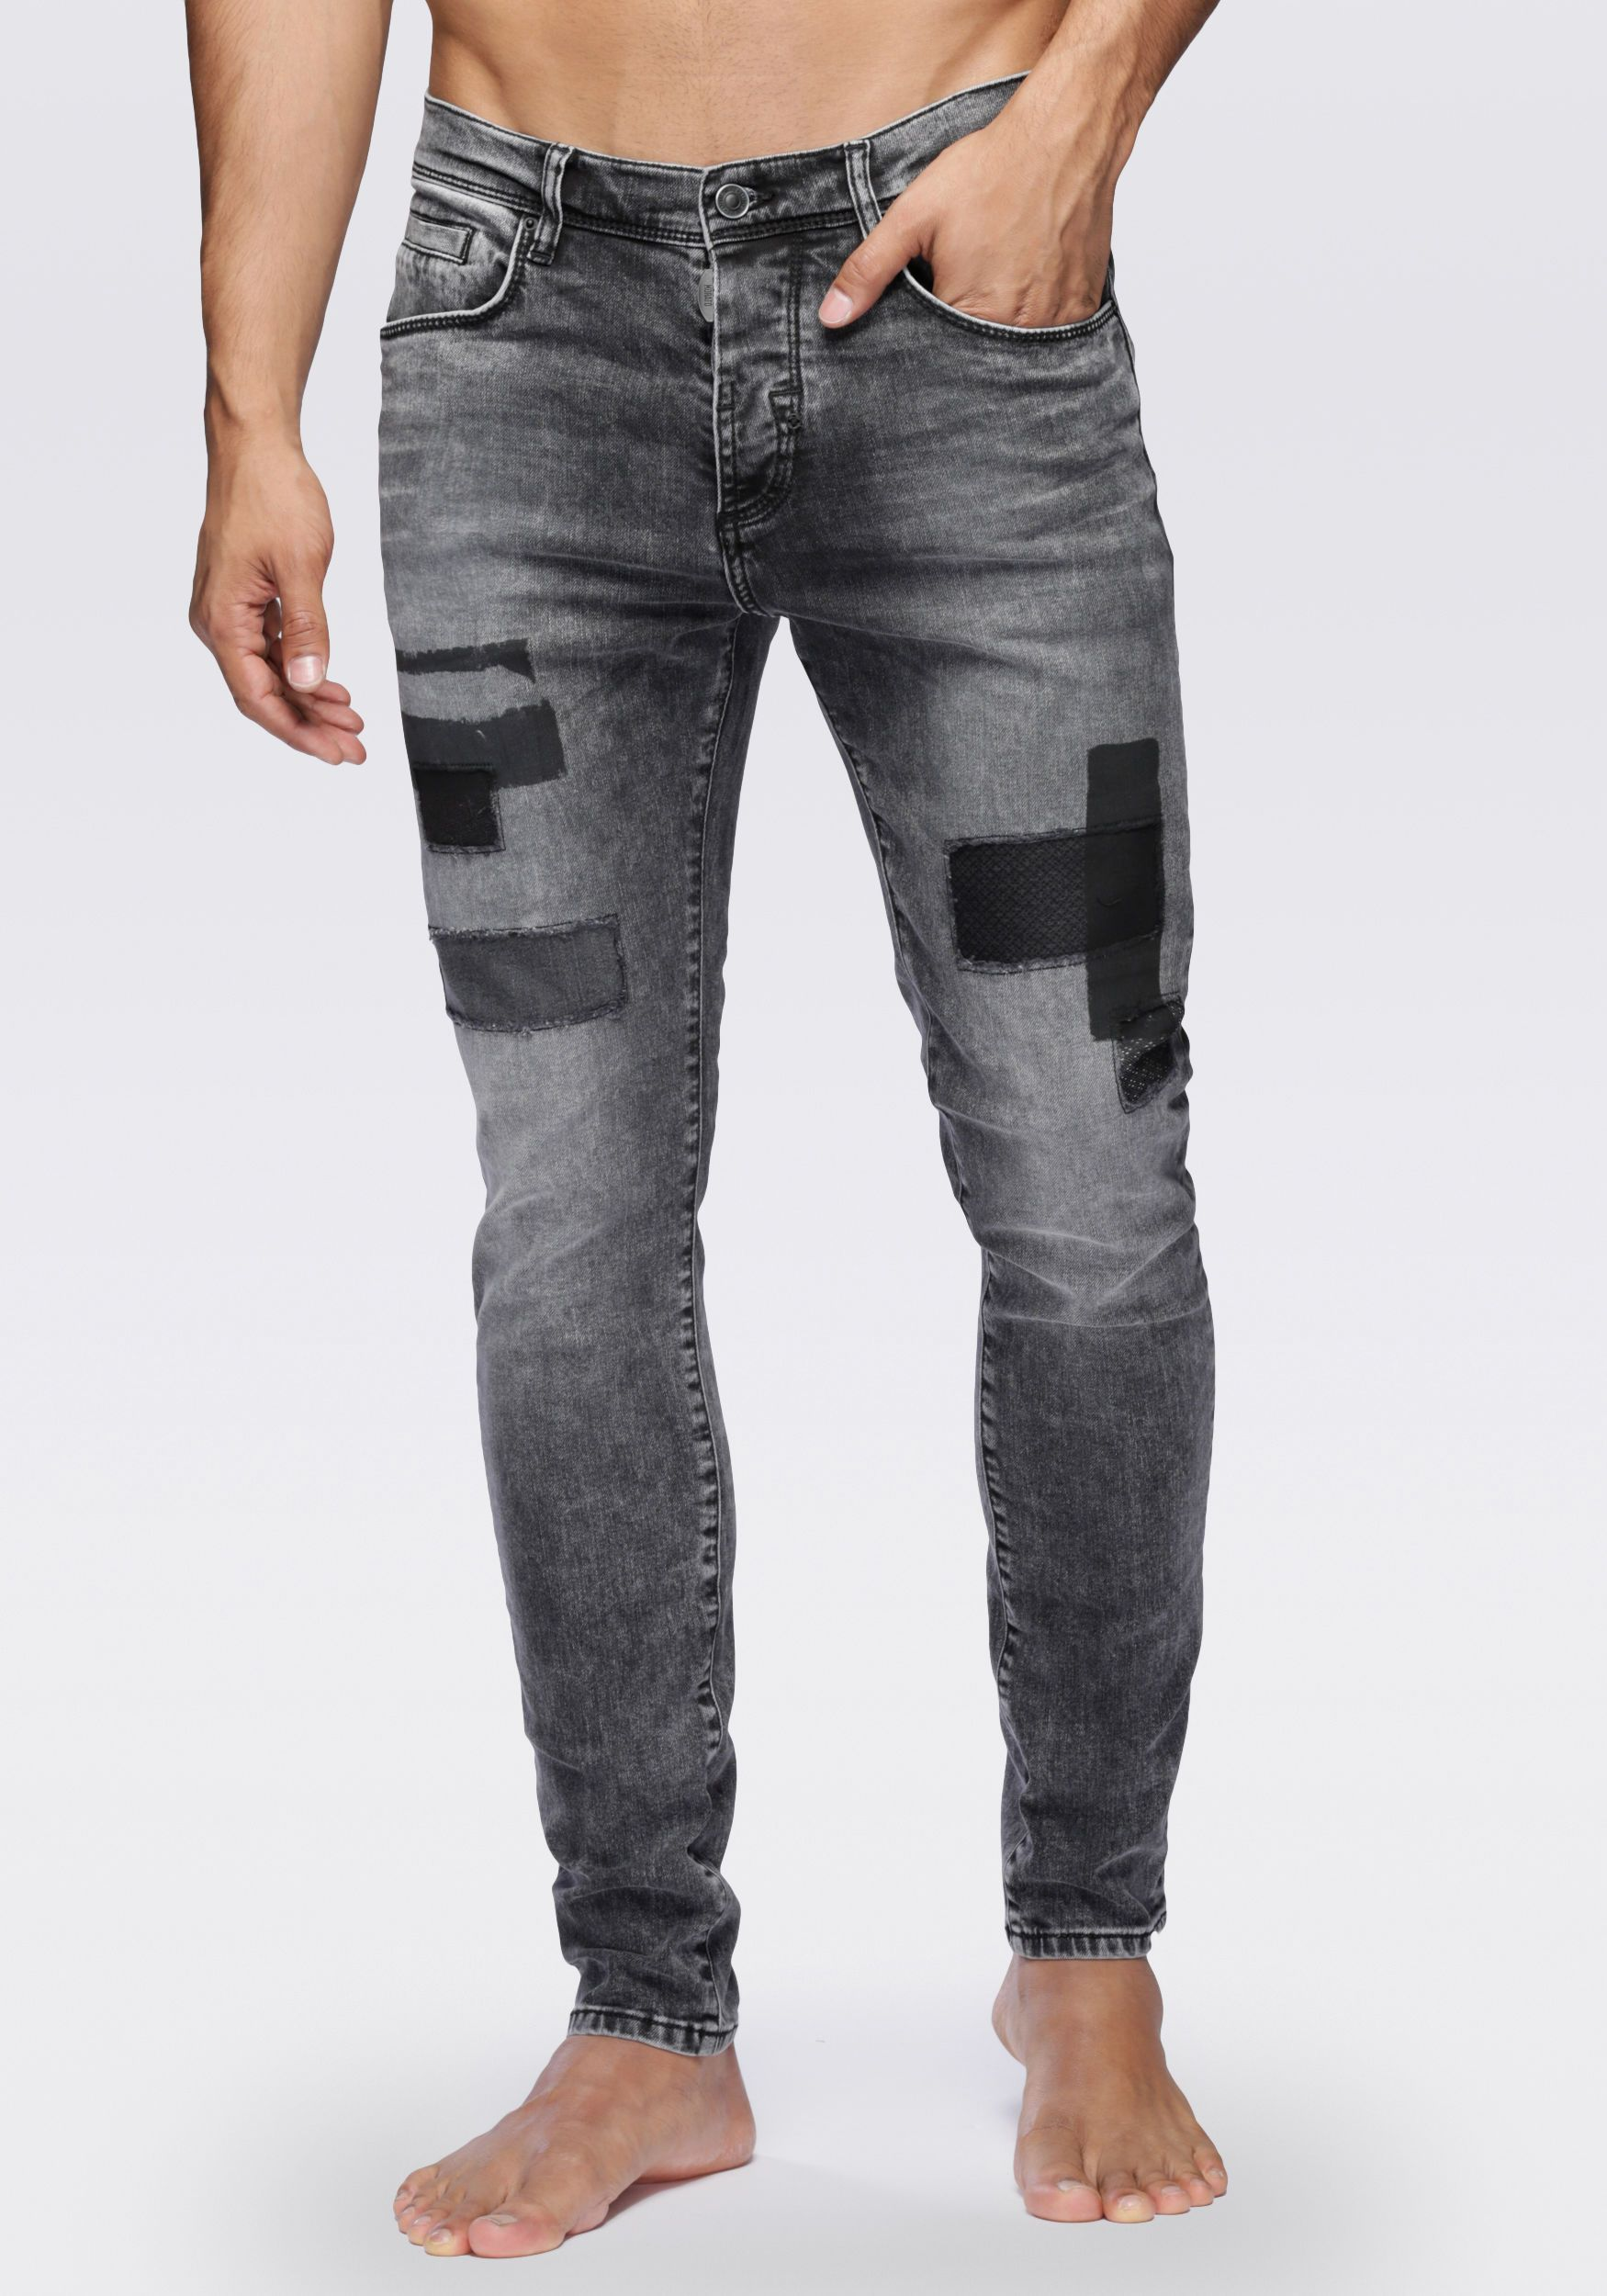 Comfortable Onfire Straight Fit Zip Fly Stretch Jeans With Belt Mens Raw Wash Online Shopping